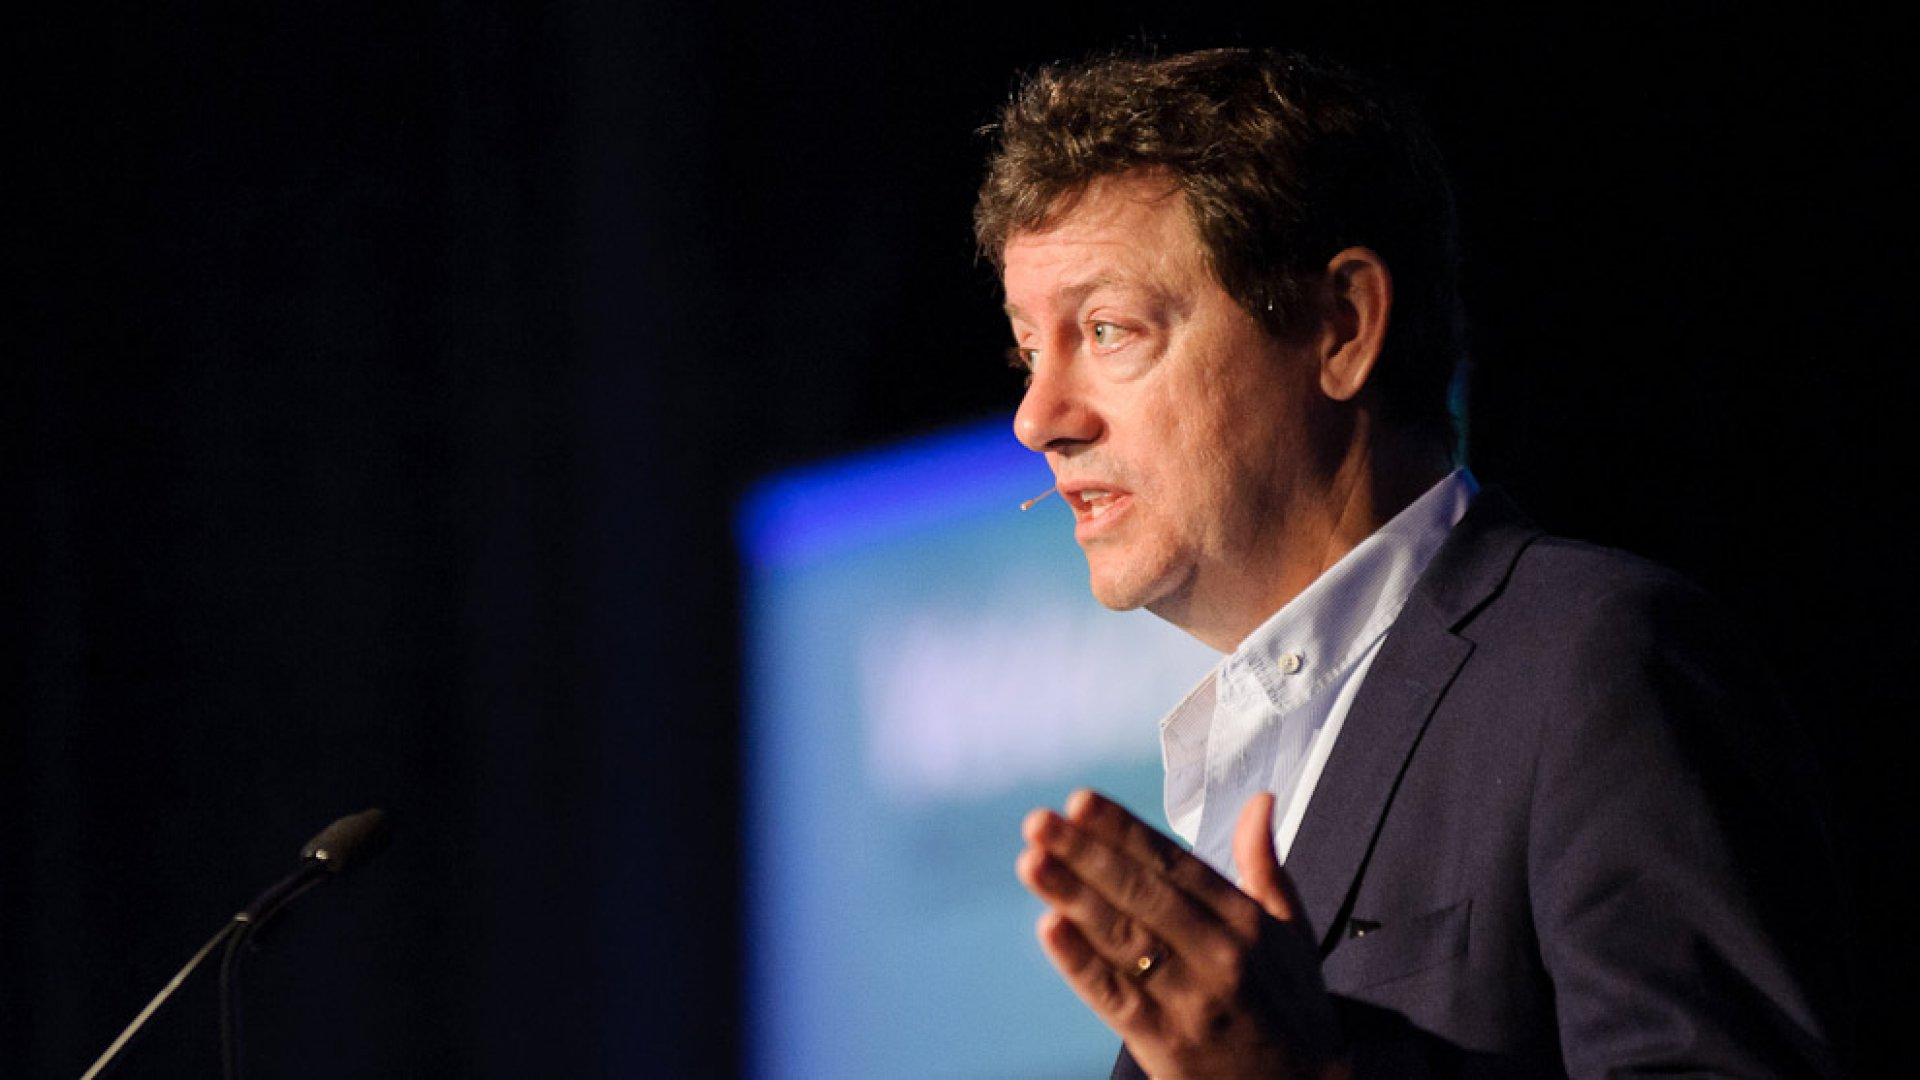 Fred Wilson's 5 Predictions for the Future of Your Money